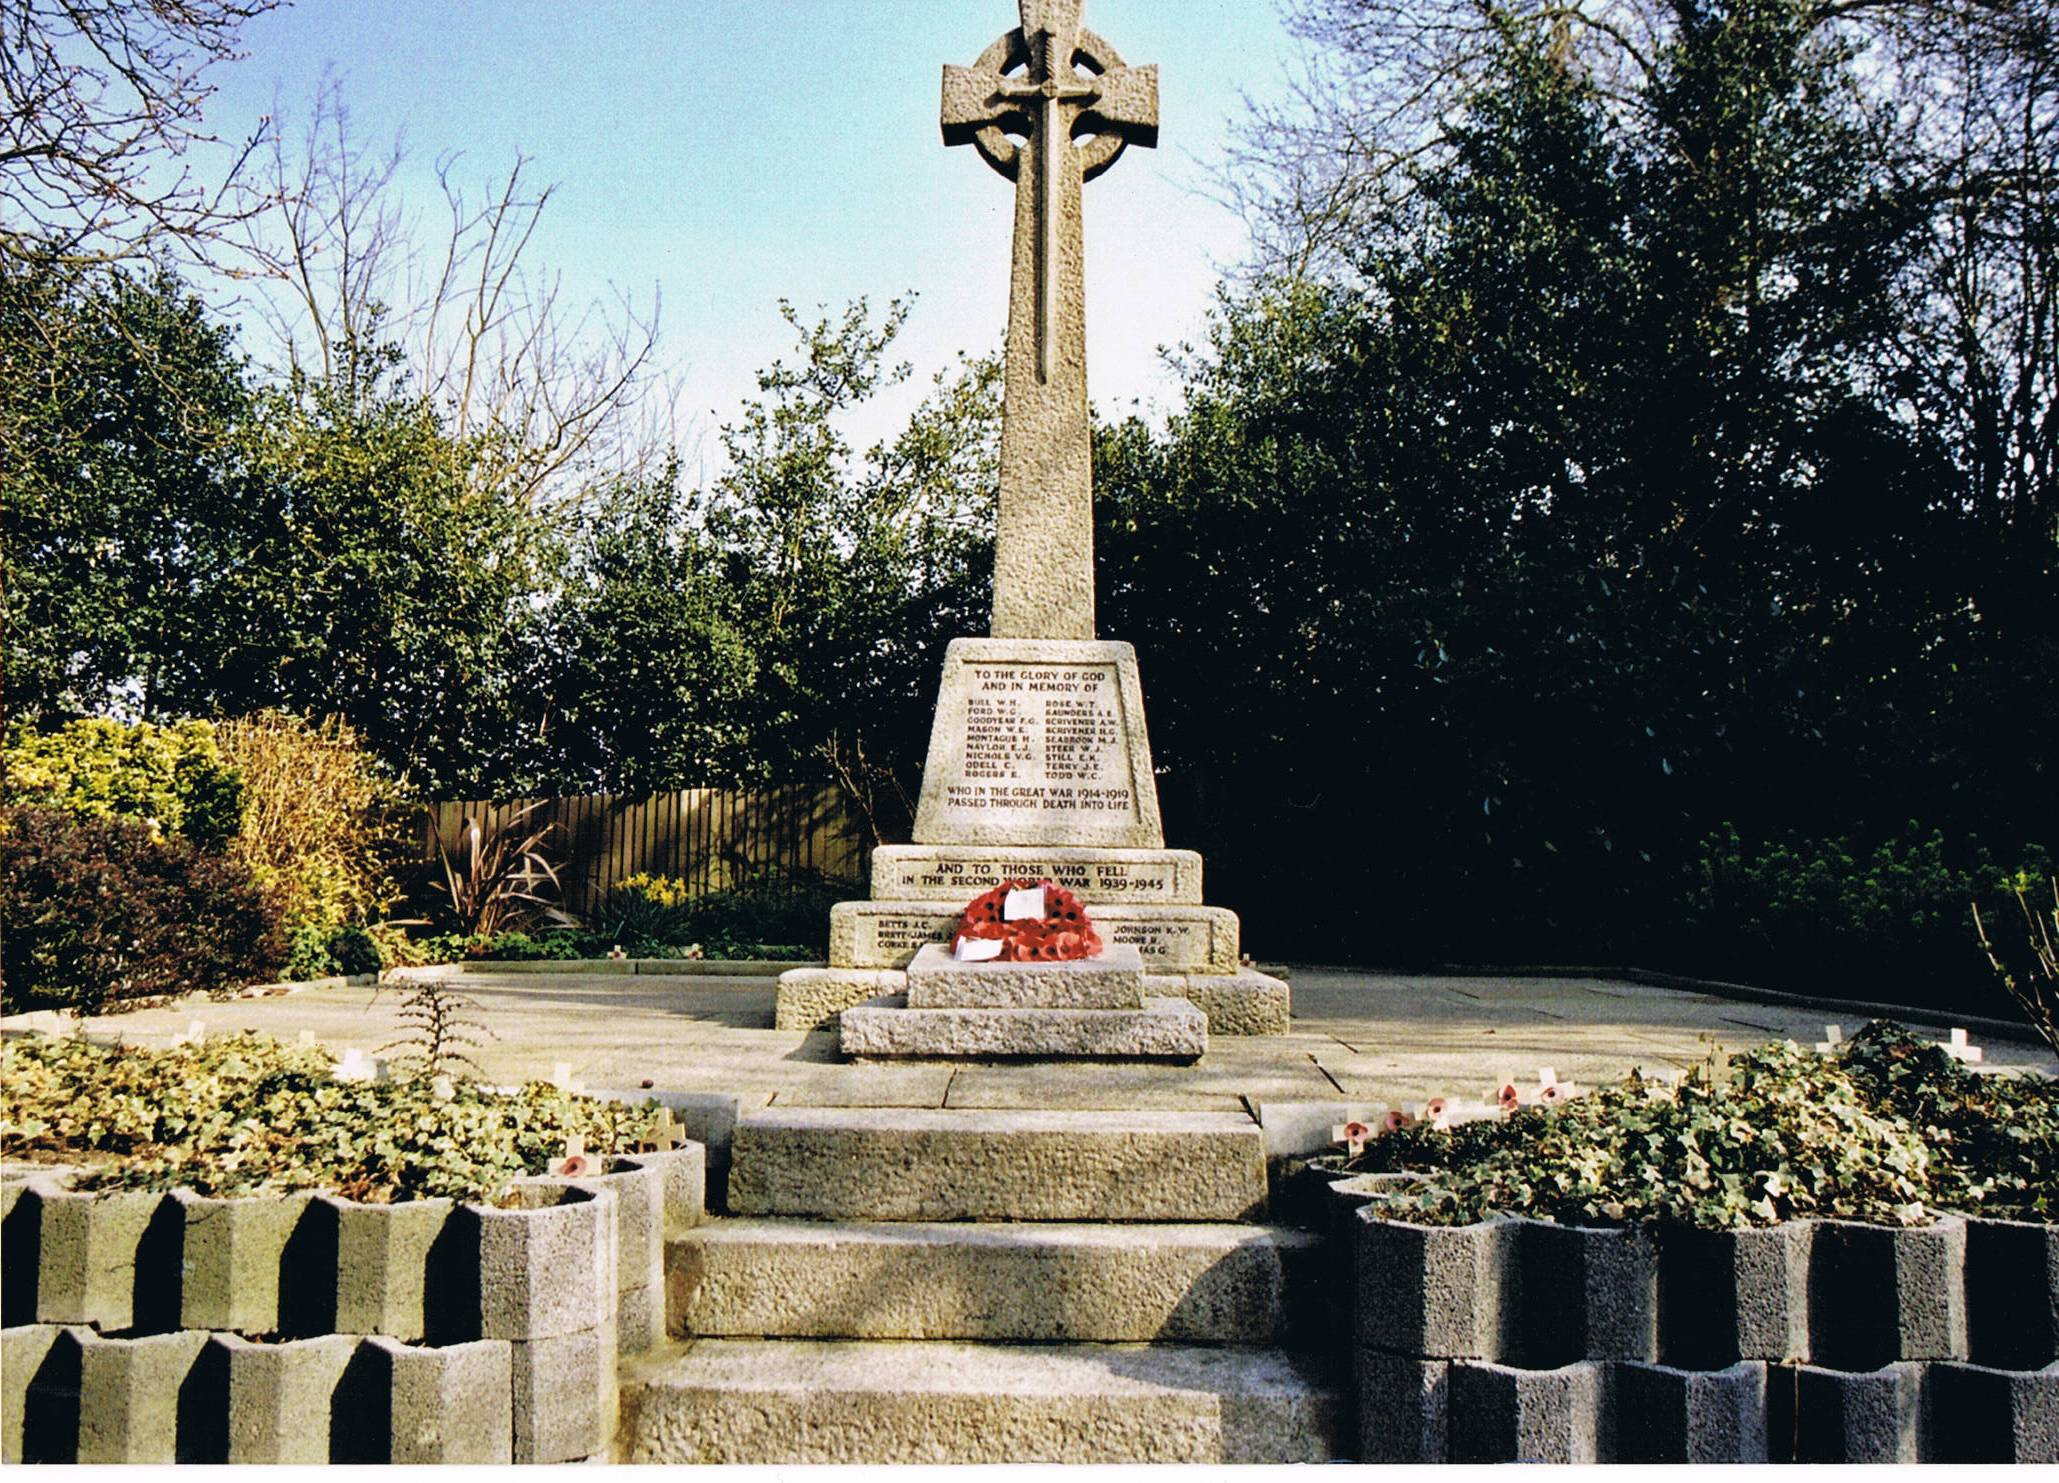 Elstree War Memorial